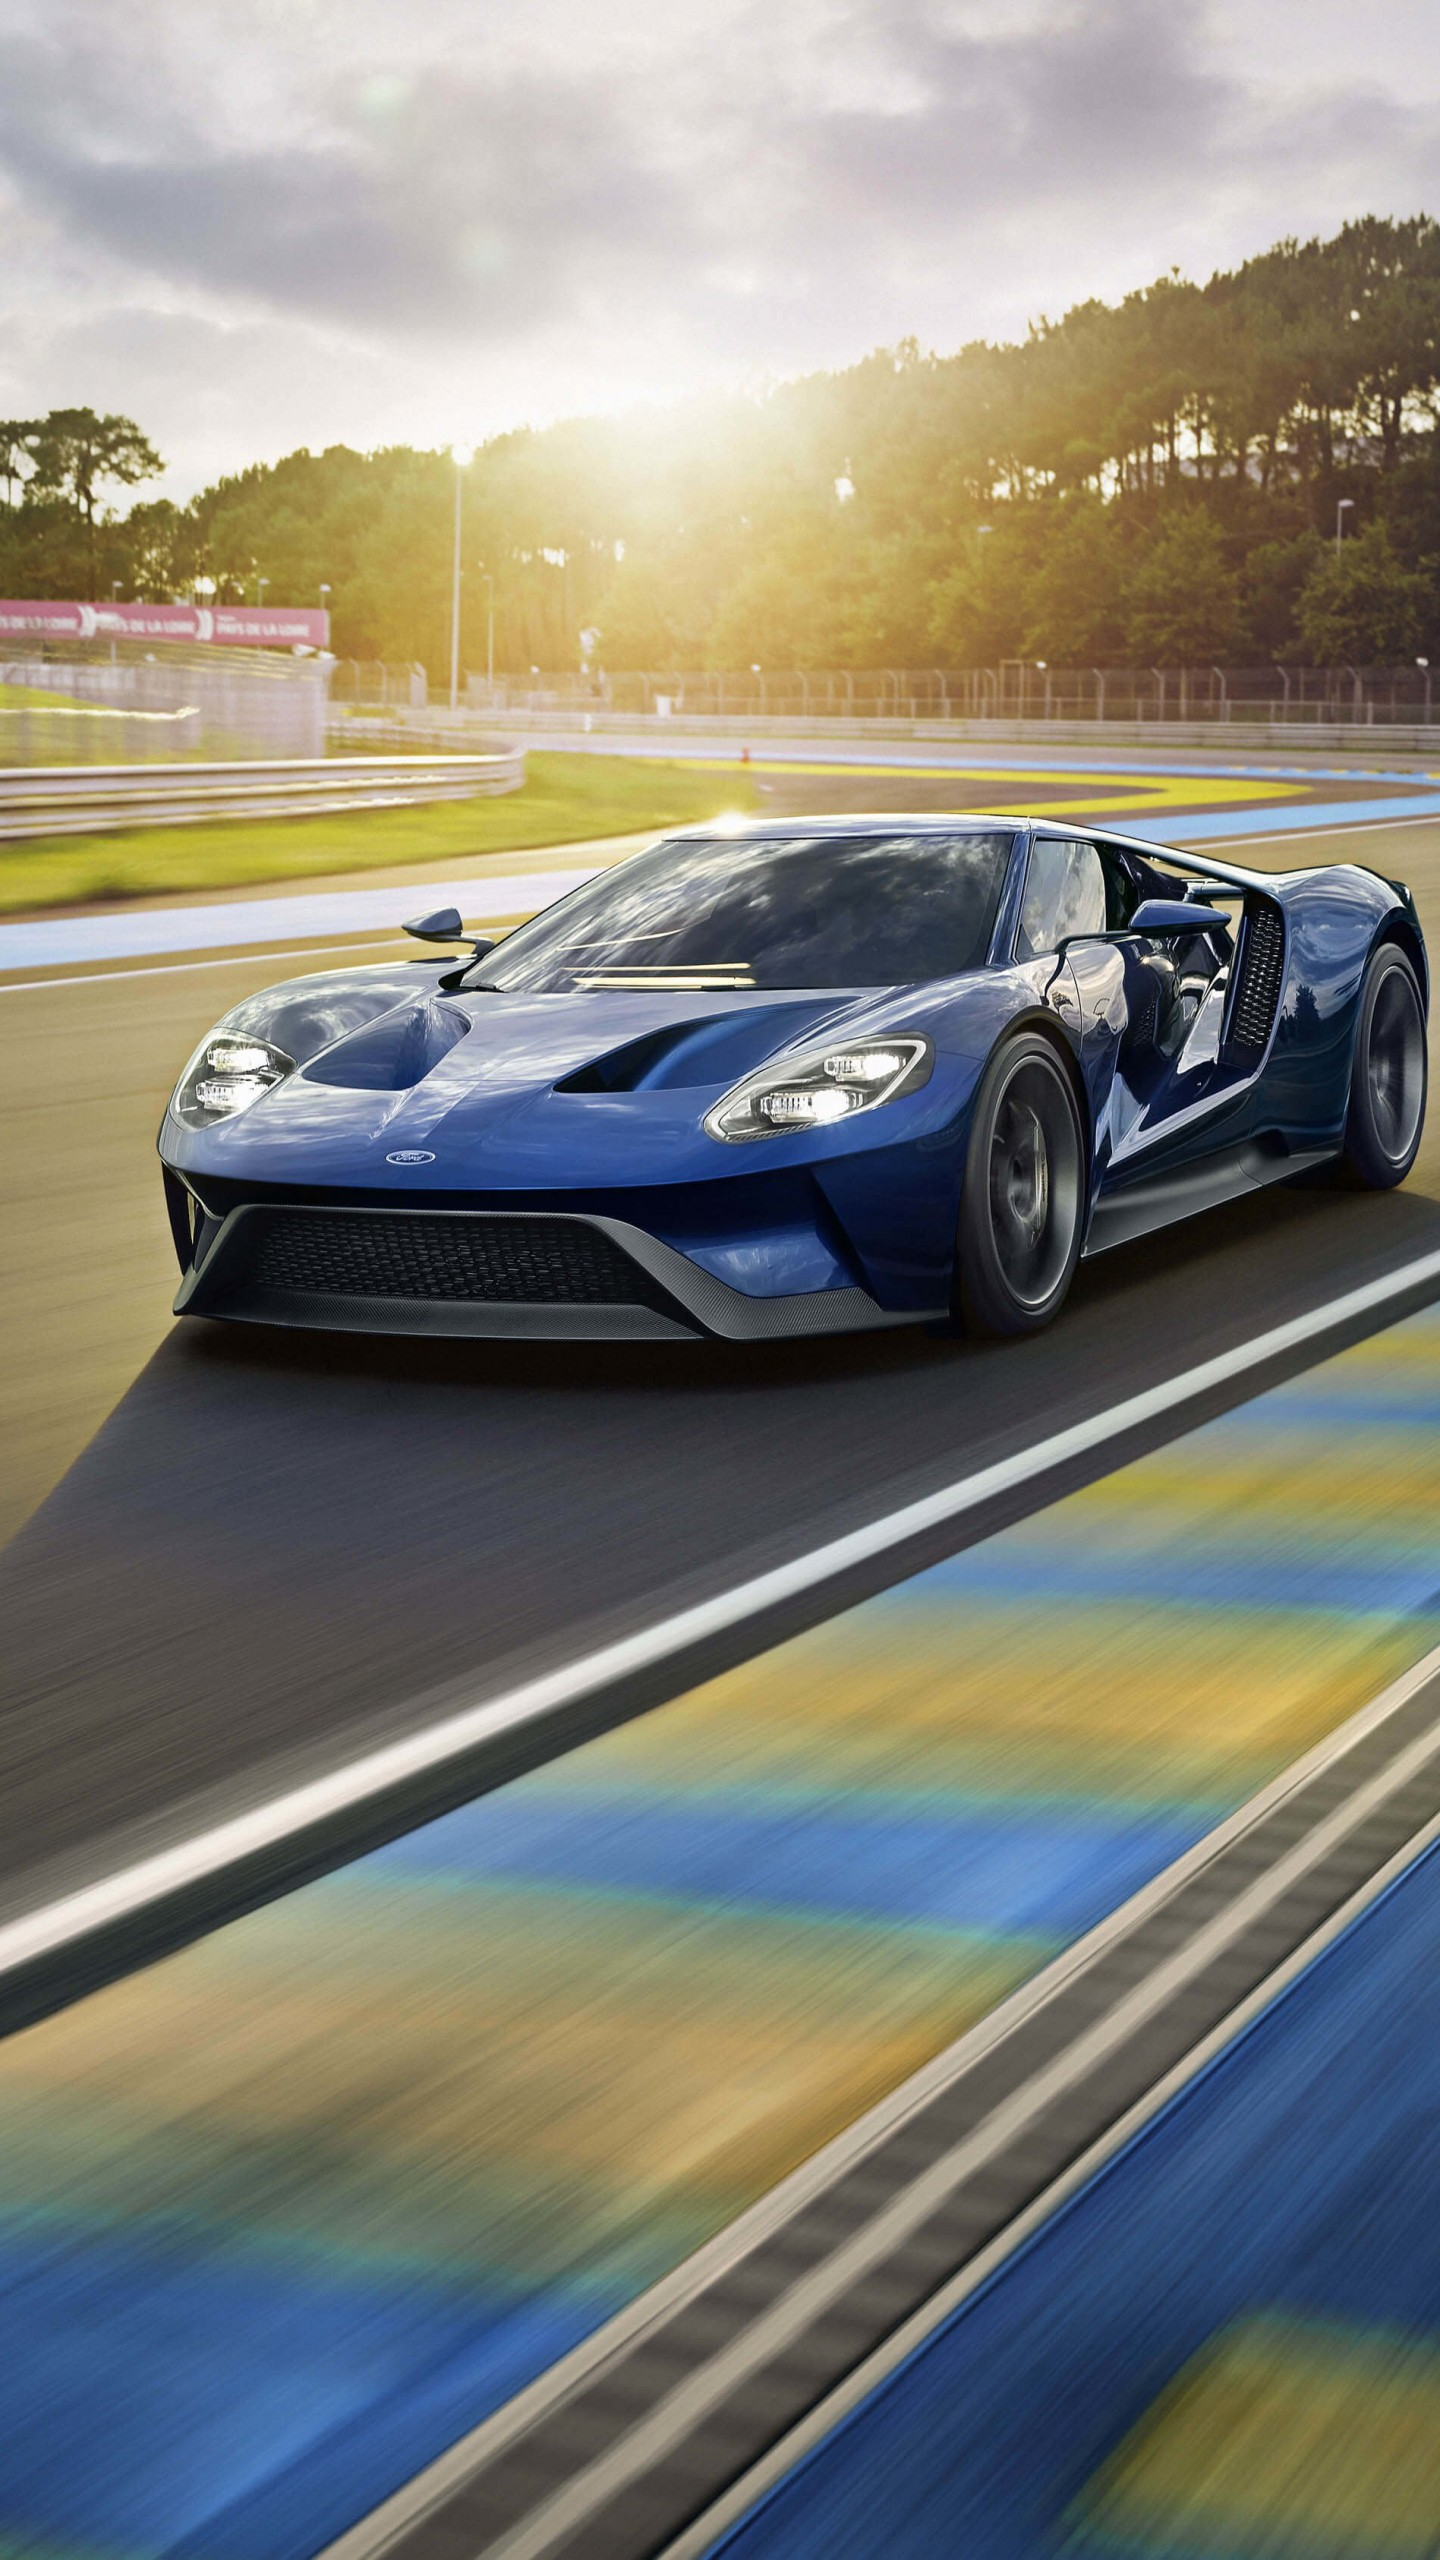 Ford GT Supercar Wallpaper for SAMSUNG Galaxy S6